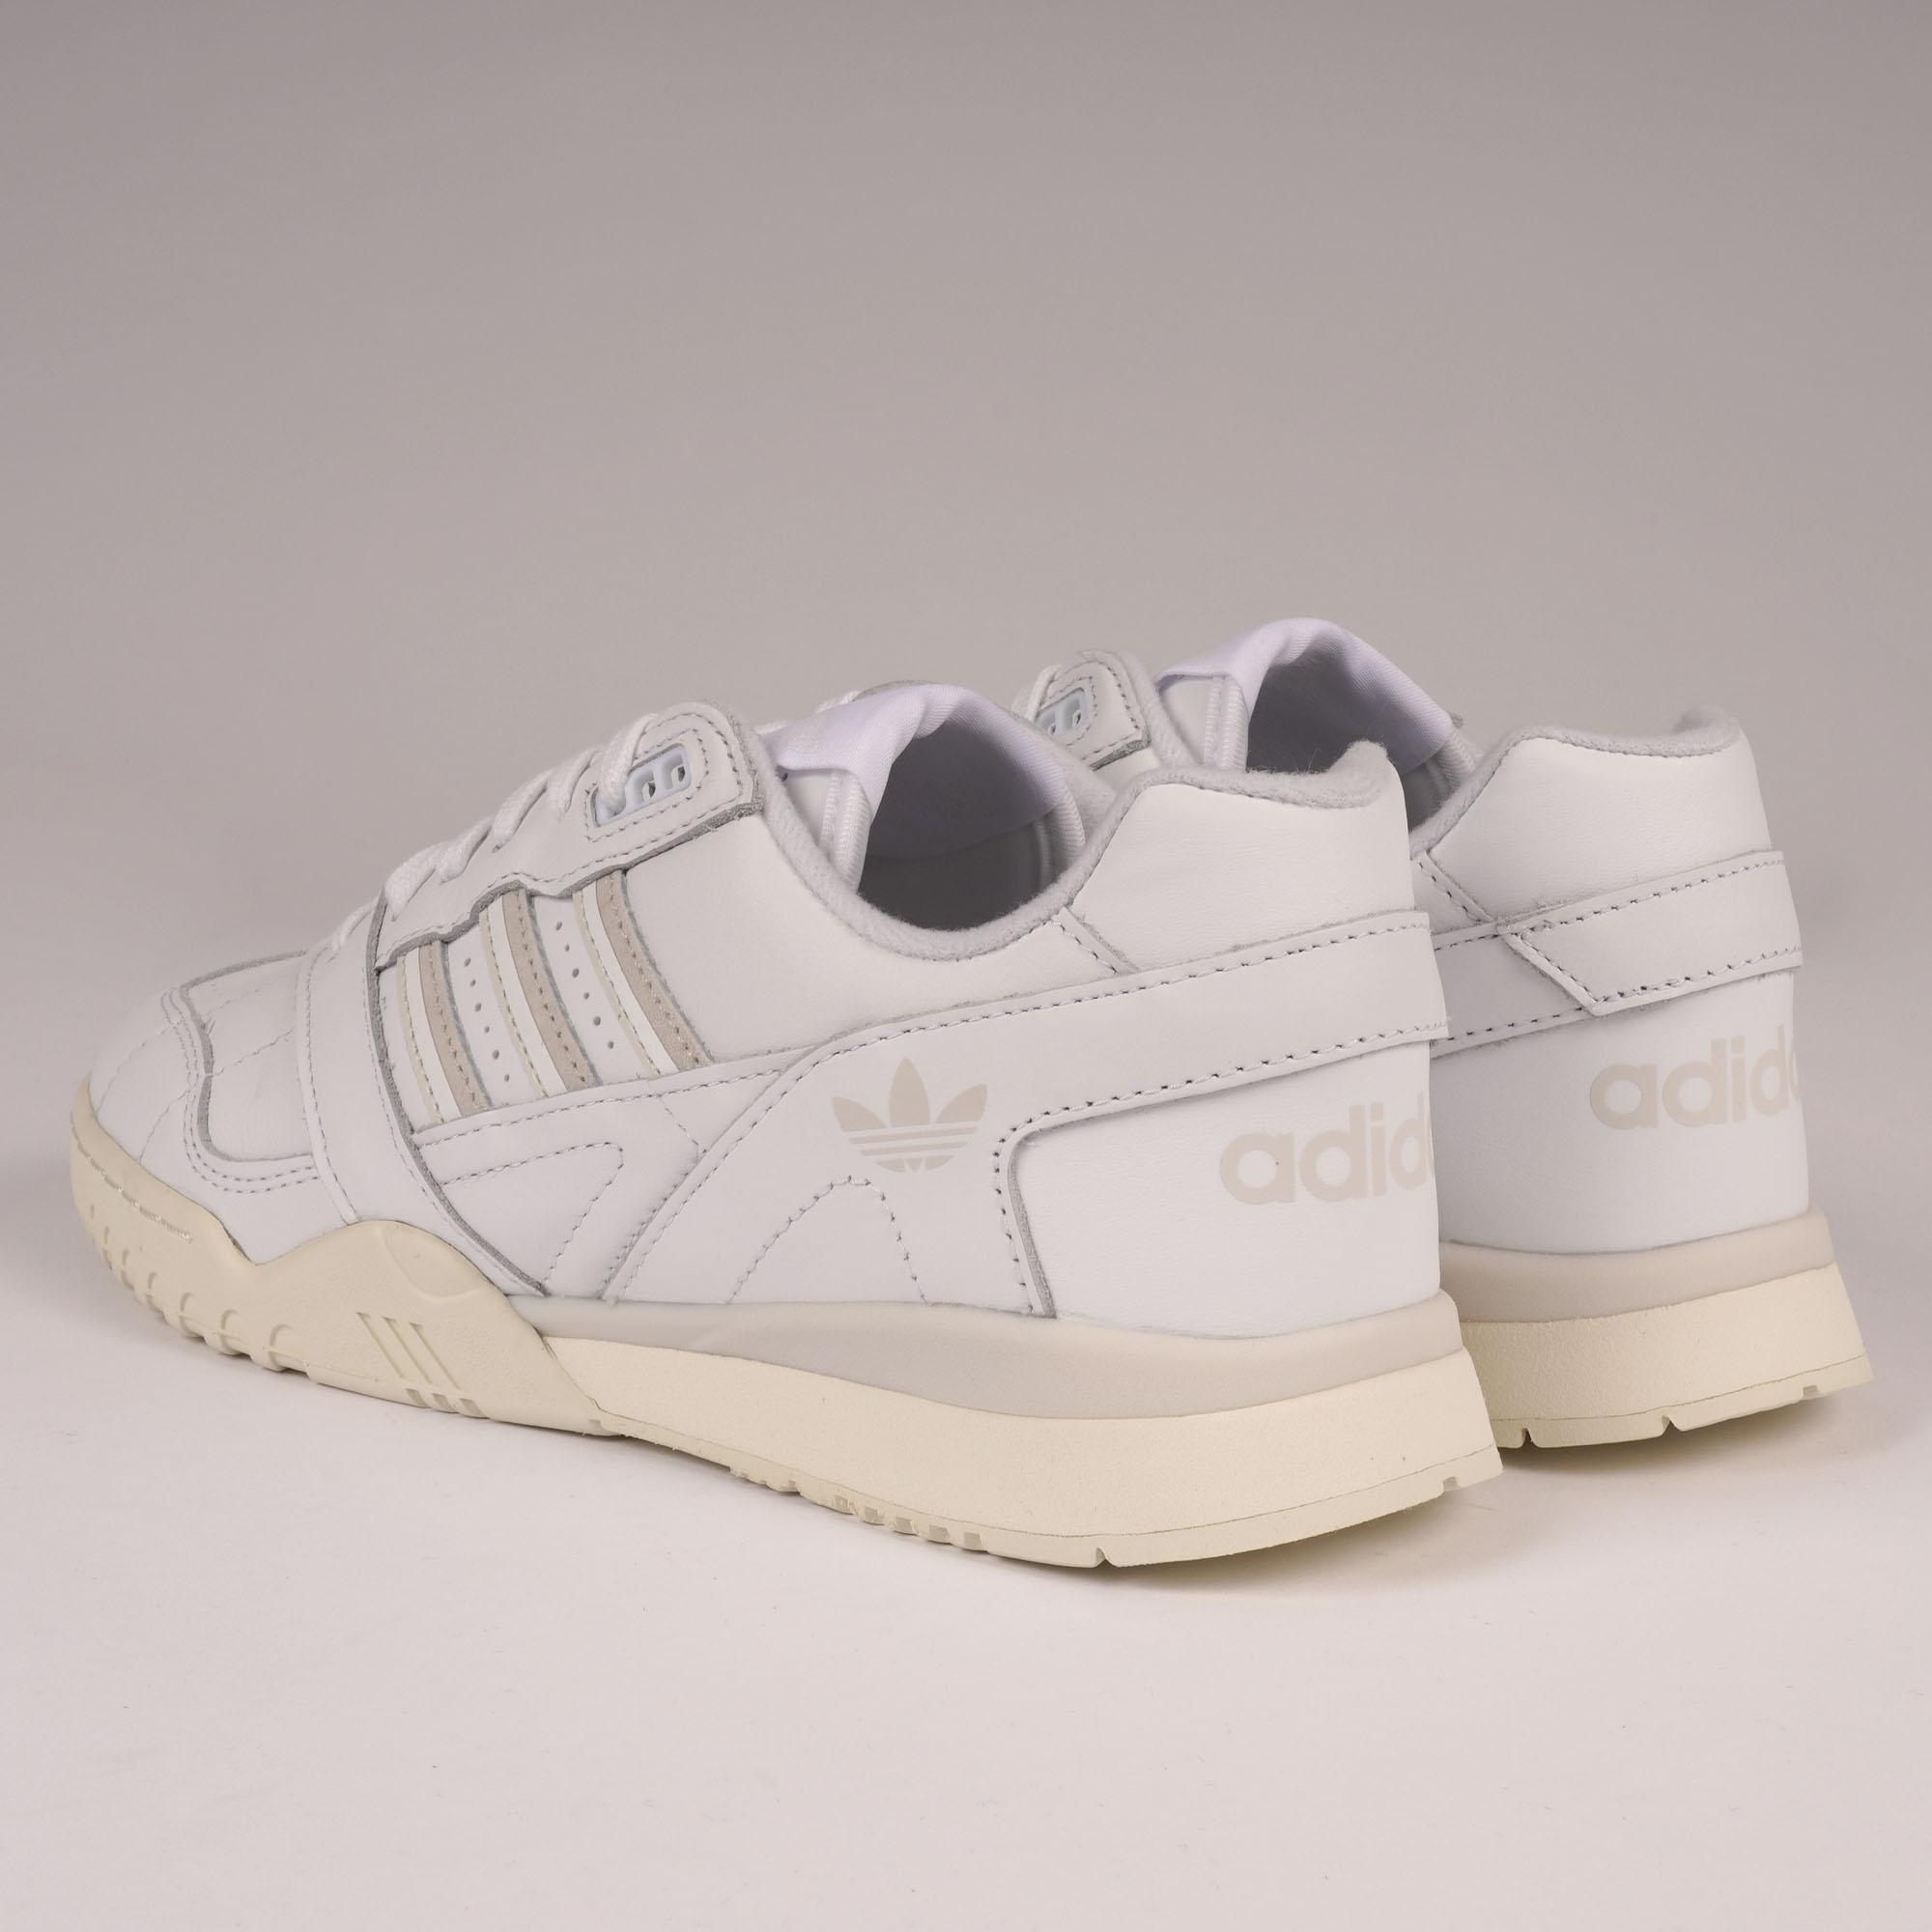 new product 7c29c bb991 Lyst - adidas Originals A.r. Trainer - Ftwr White, Raw White